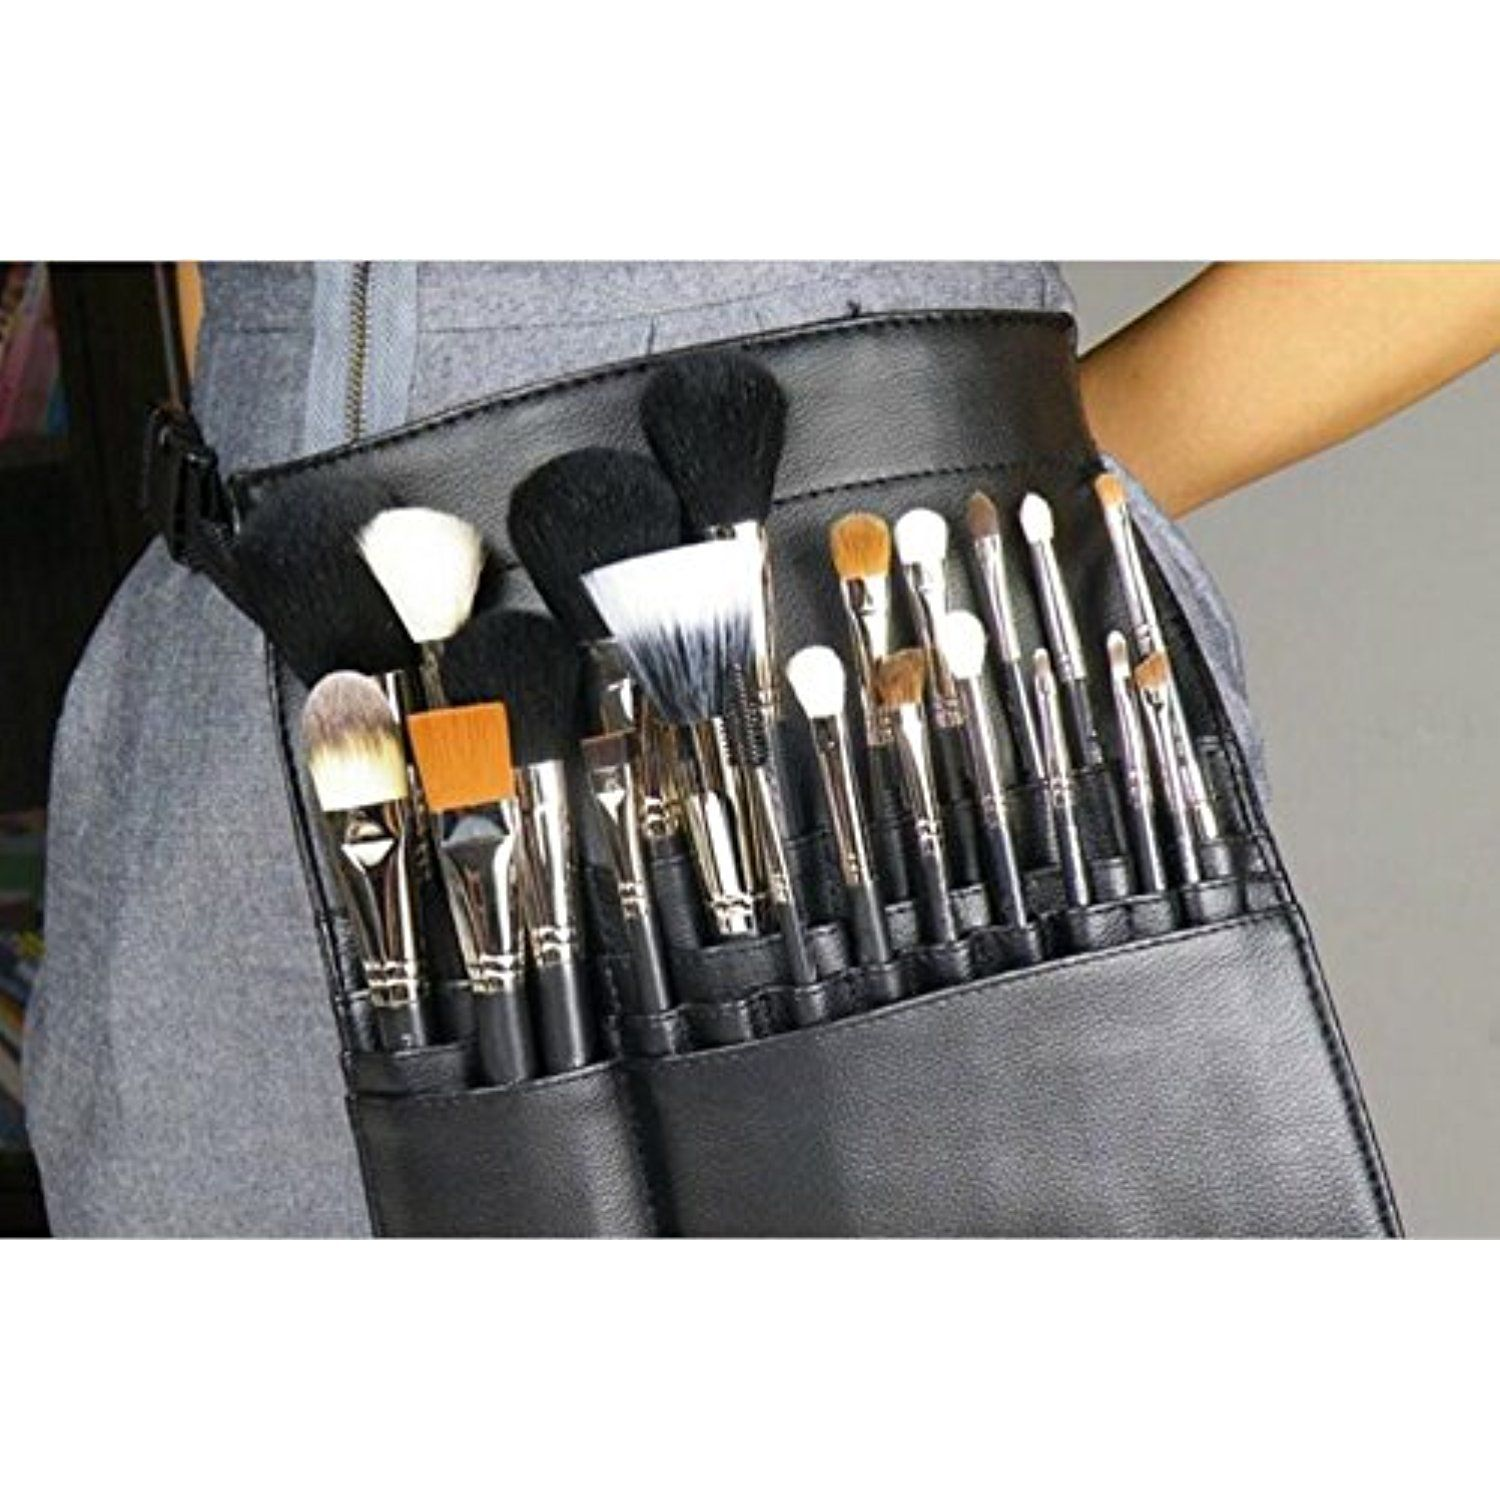 Professional Cosmetic Case Makeup Brush Organizer Makeup Artist Case With Belt Strap Holder Multi Functional Cosmetic Bag Makeup Brush Bag Makeup Brushes Brush